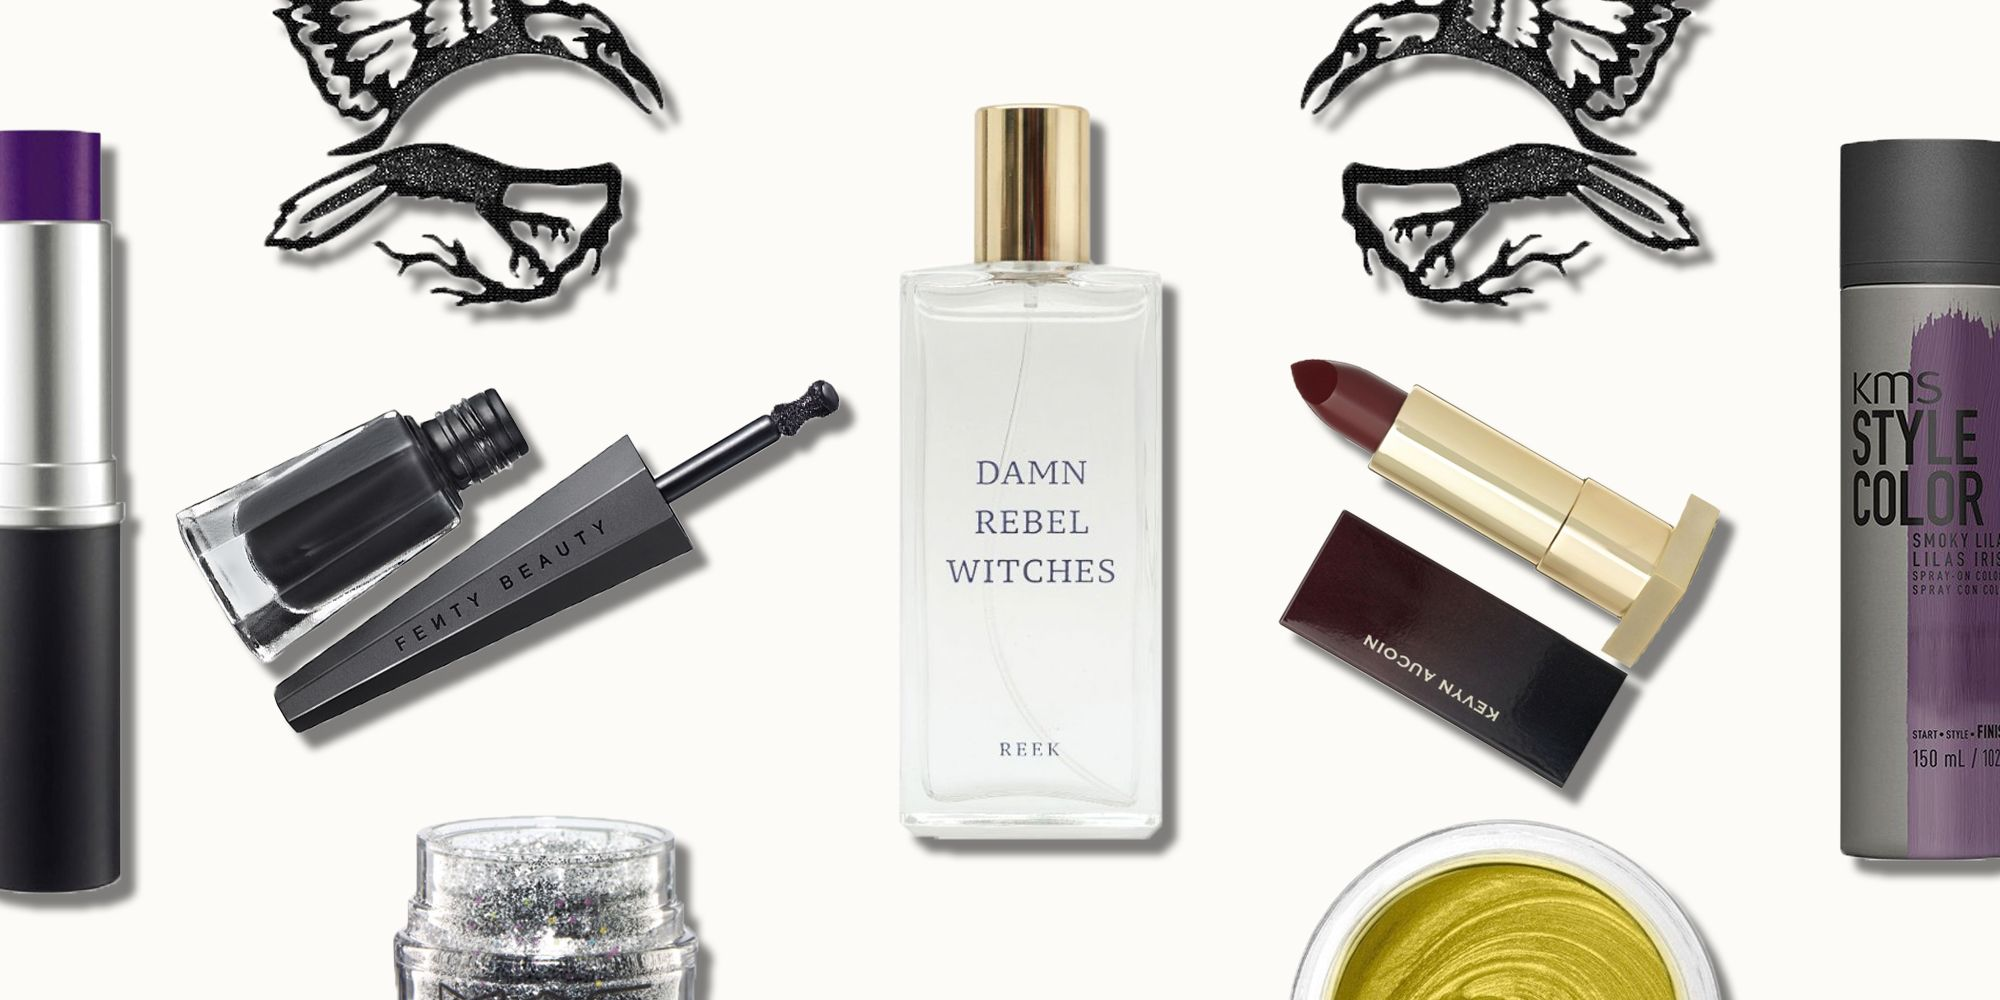 13 Halloween Hair And Make-Up Products To Buy For A Seriously Spooky Beauty Look